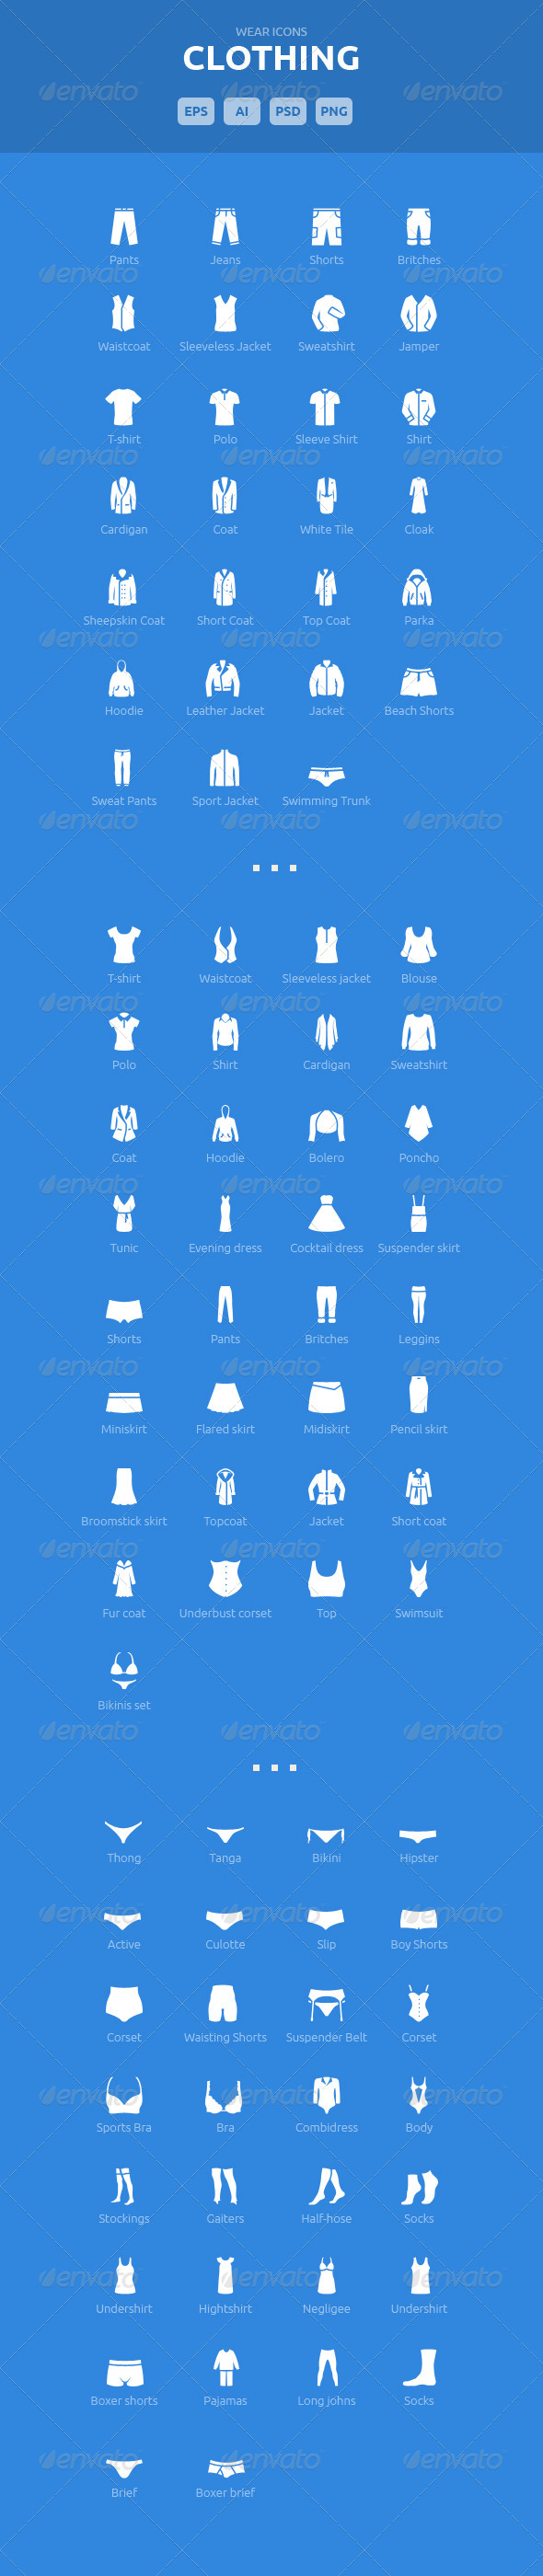 Wear Icons - Clothing Vector Pack